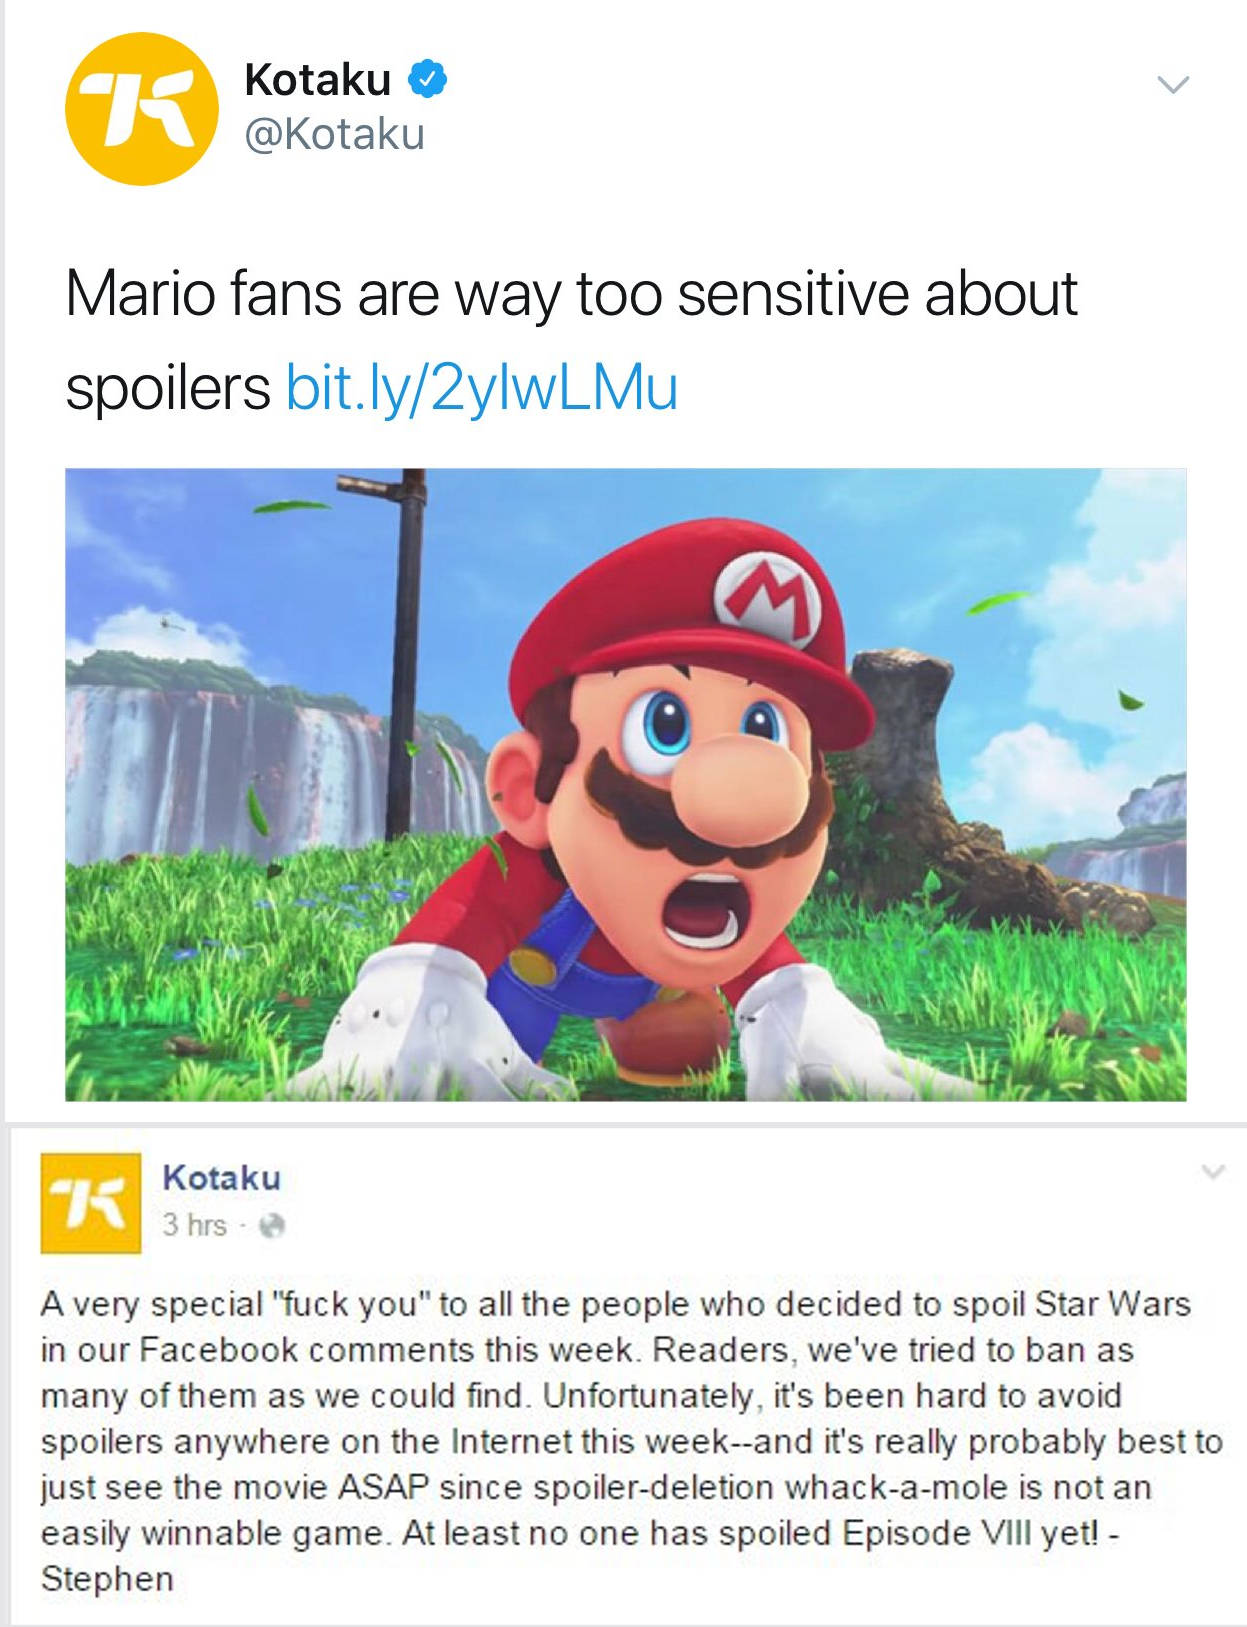 https://cdn.discordapp.com/attachments/372508286529961996/378370791269597195/kotaku-spoiler-karma.jpg